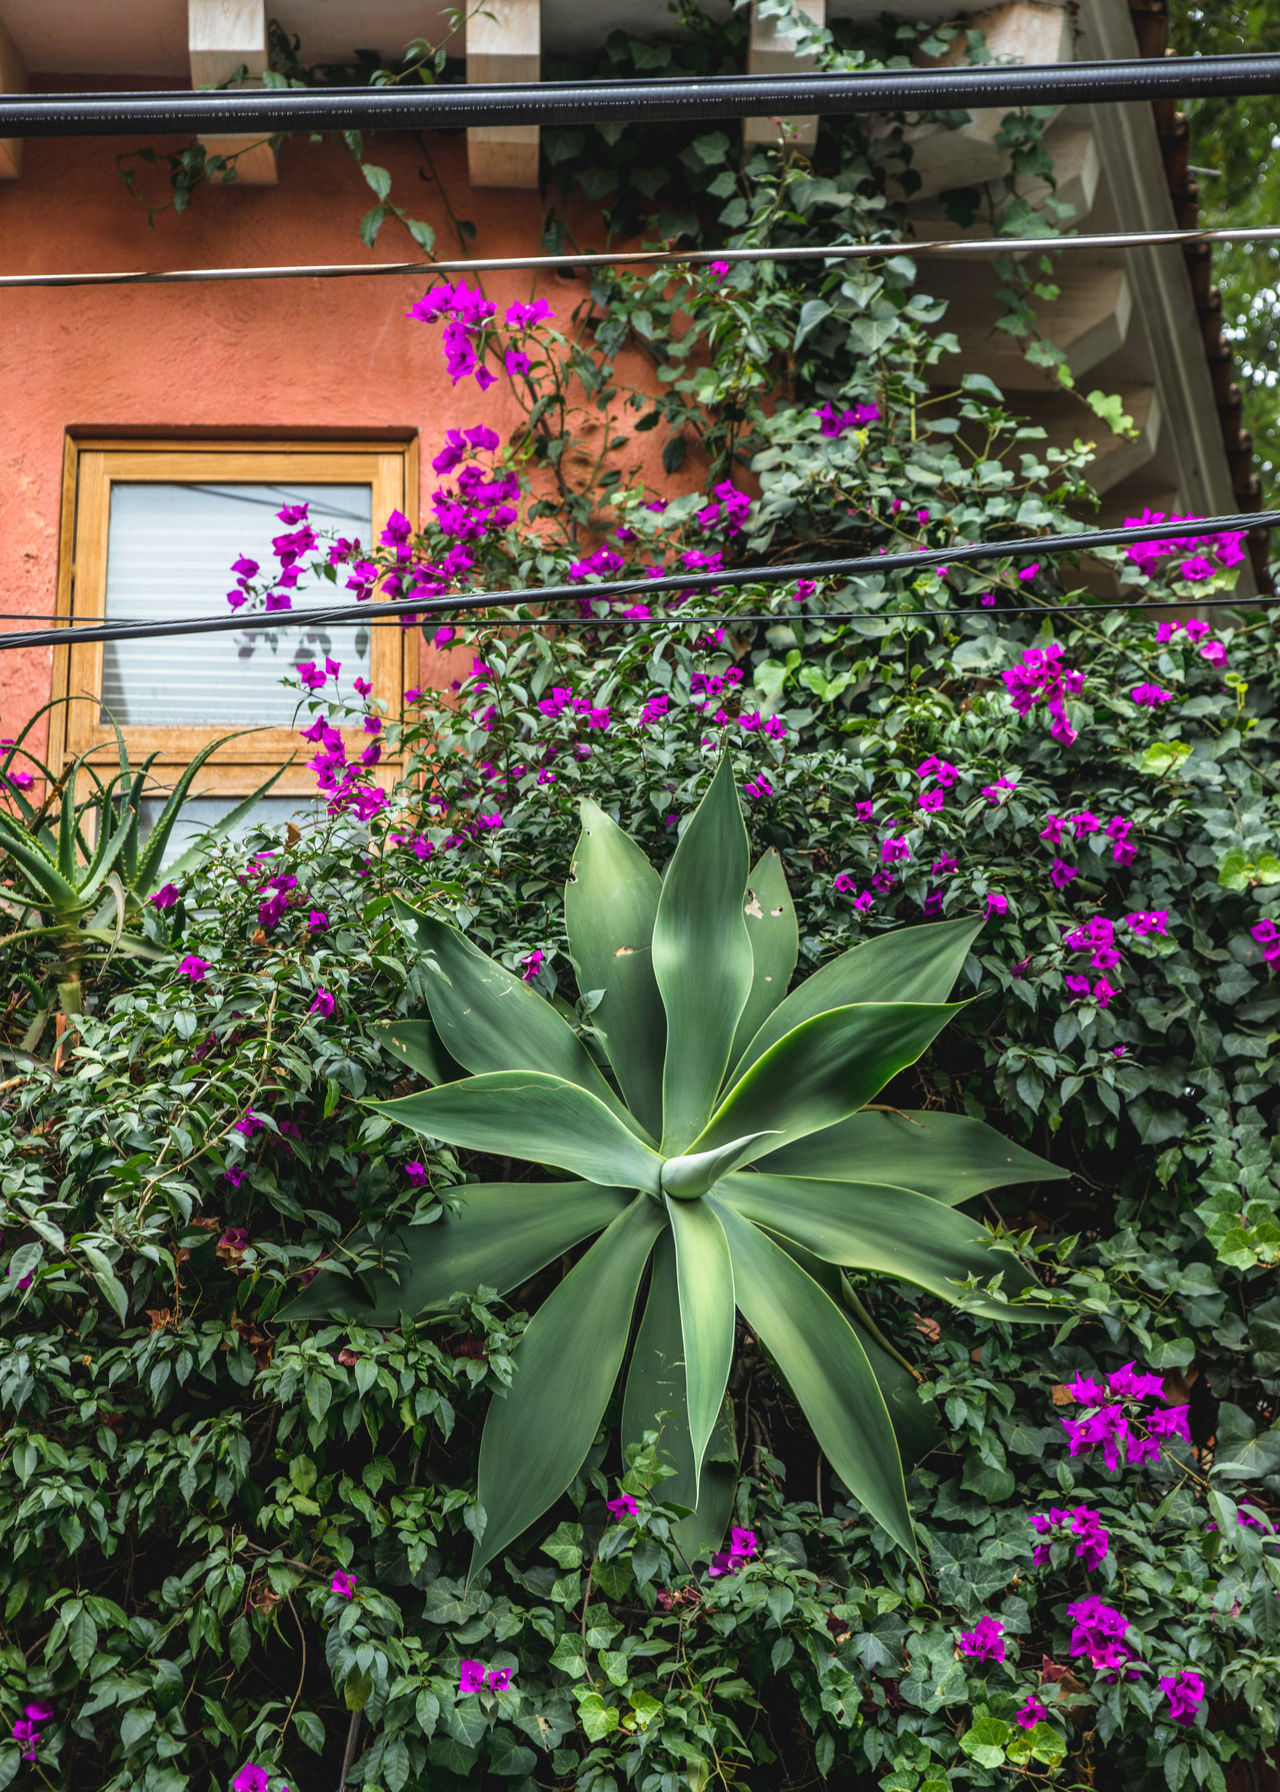 Abstract Abstract Photography Agave Architecture Beauty In Nature Building Exterior Built Structure City Composition Day Flower Flowers Fragility Freshness Growth Landscape Modern Modern Architecture Nature Nature Photography Outdoors Plant San Angel Street Streetphotography Art Is Everywhere